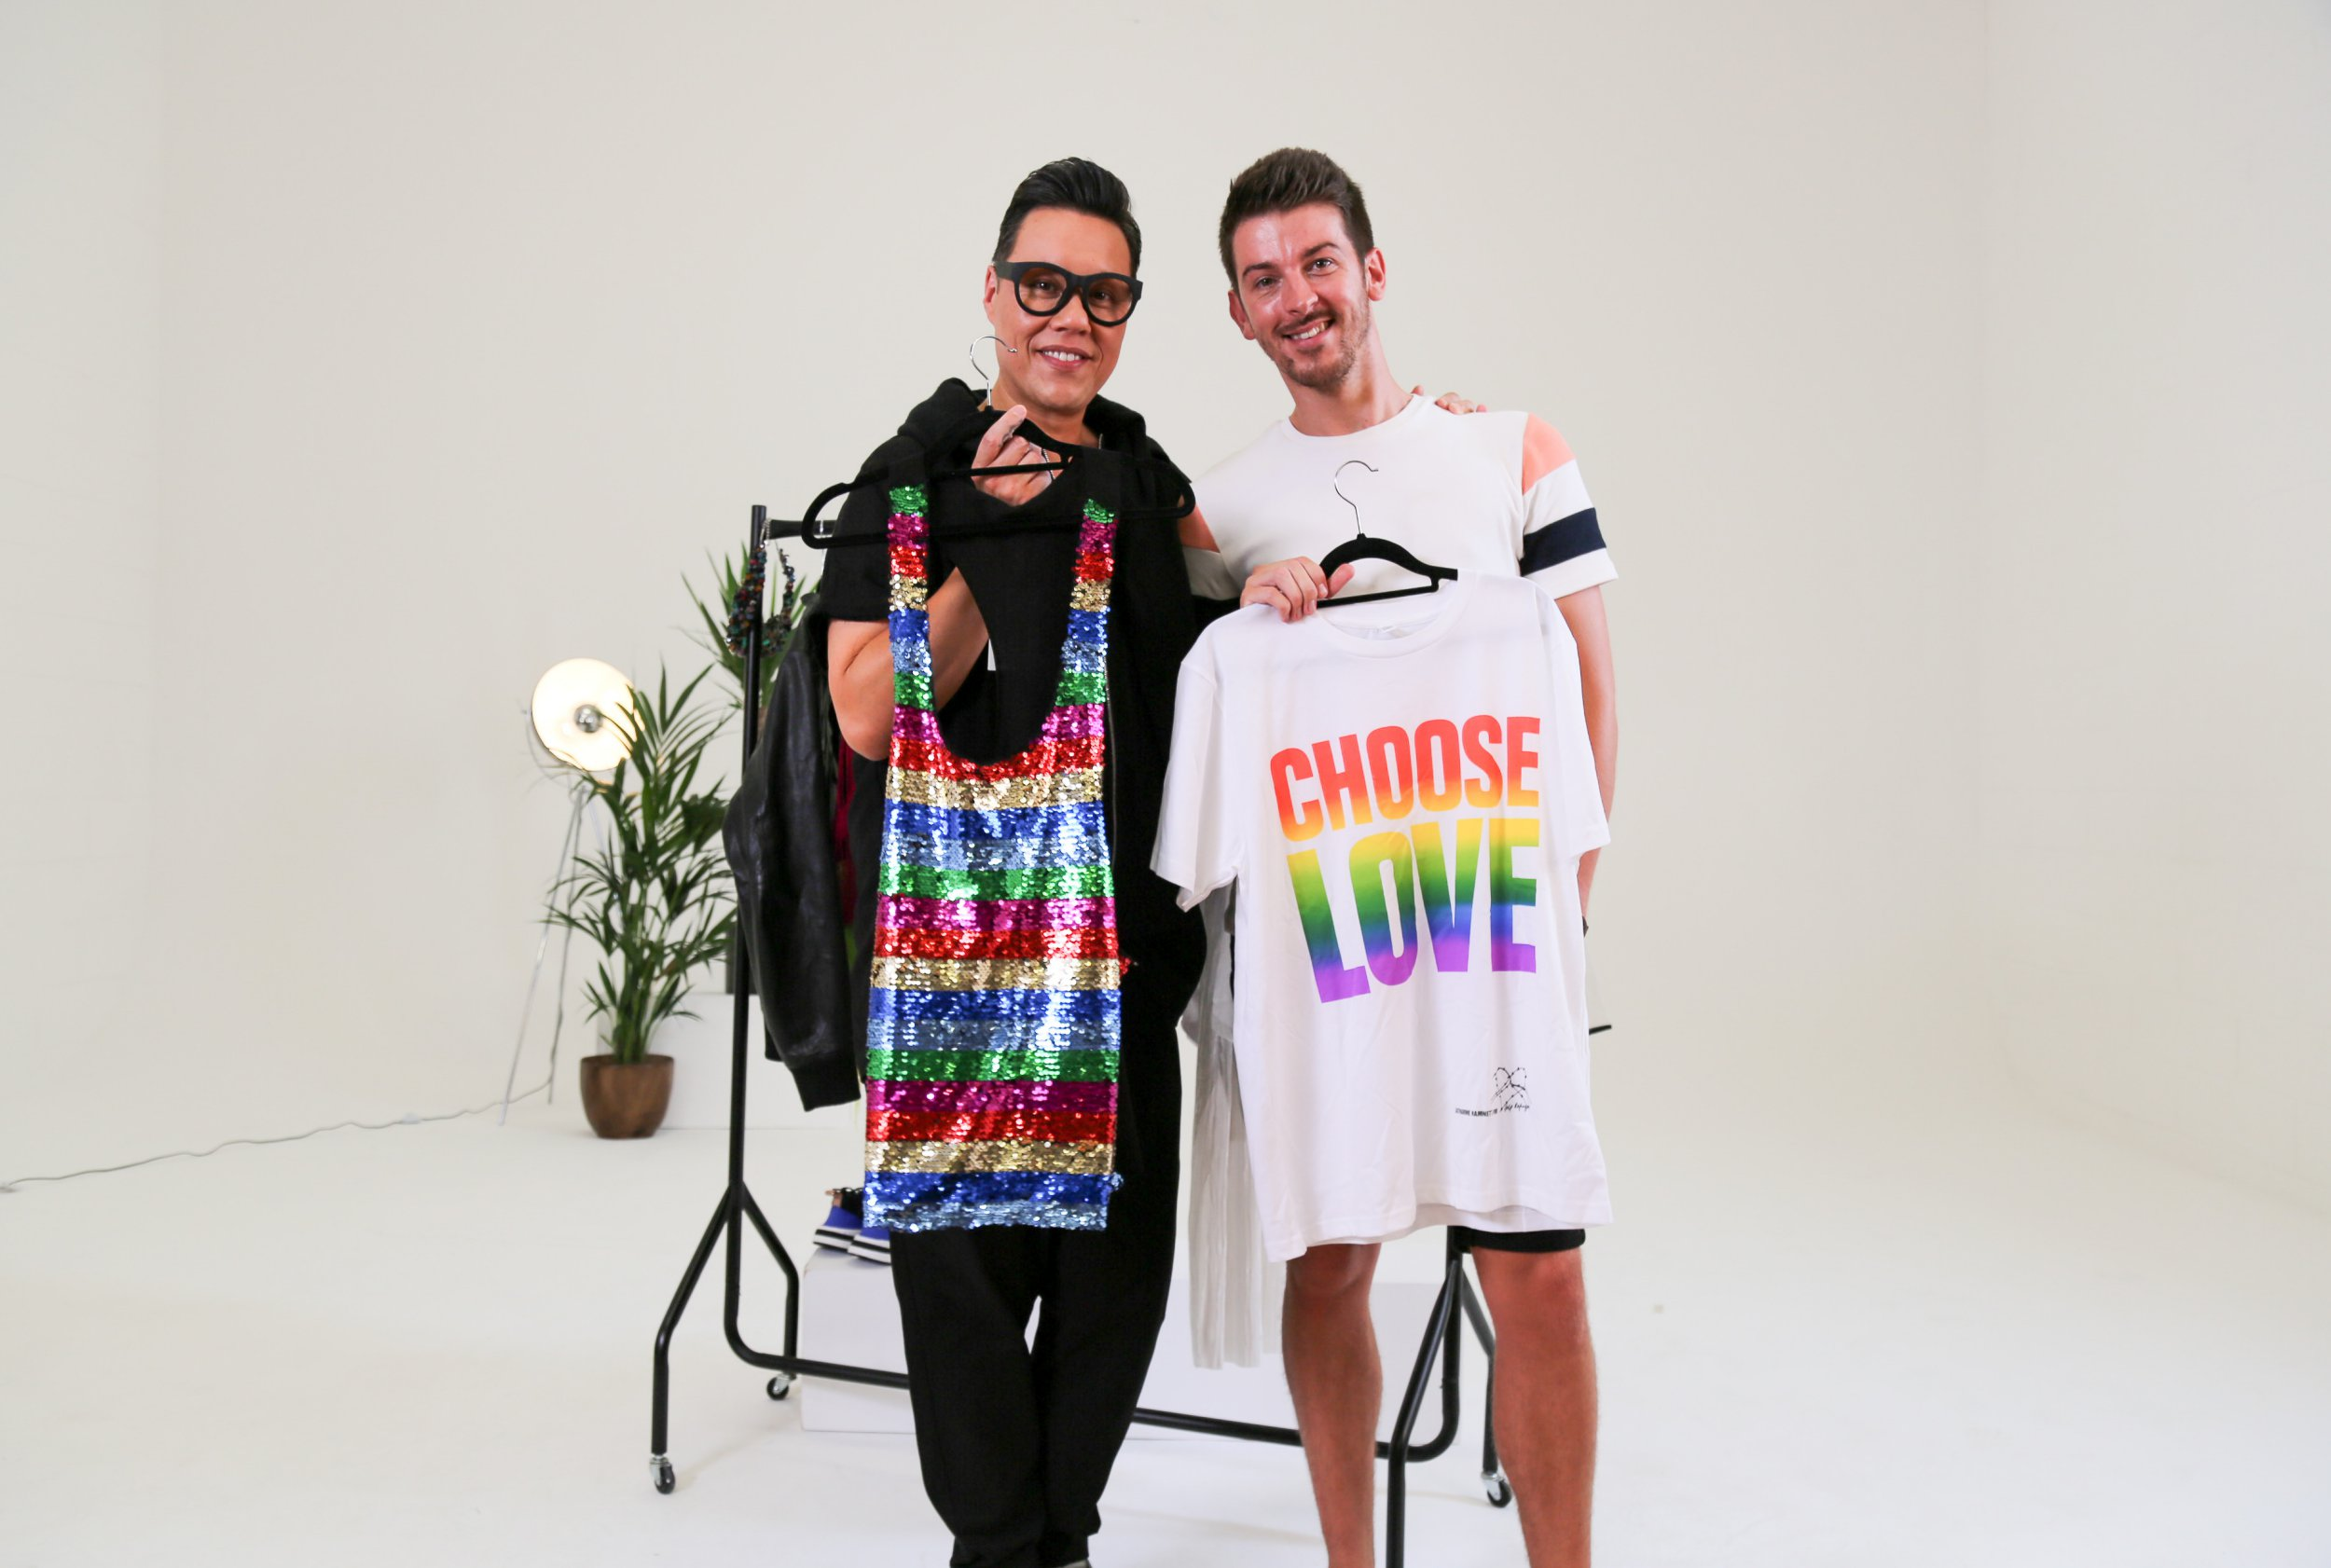 Gok Wan shows what it's really like for LGBTQ community around the world and why we must do better